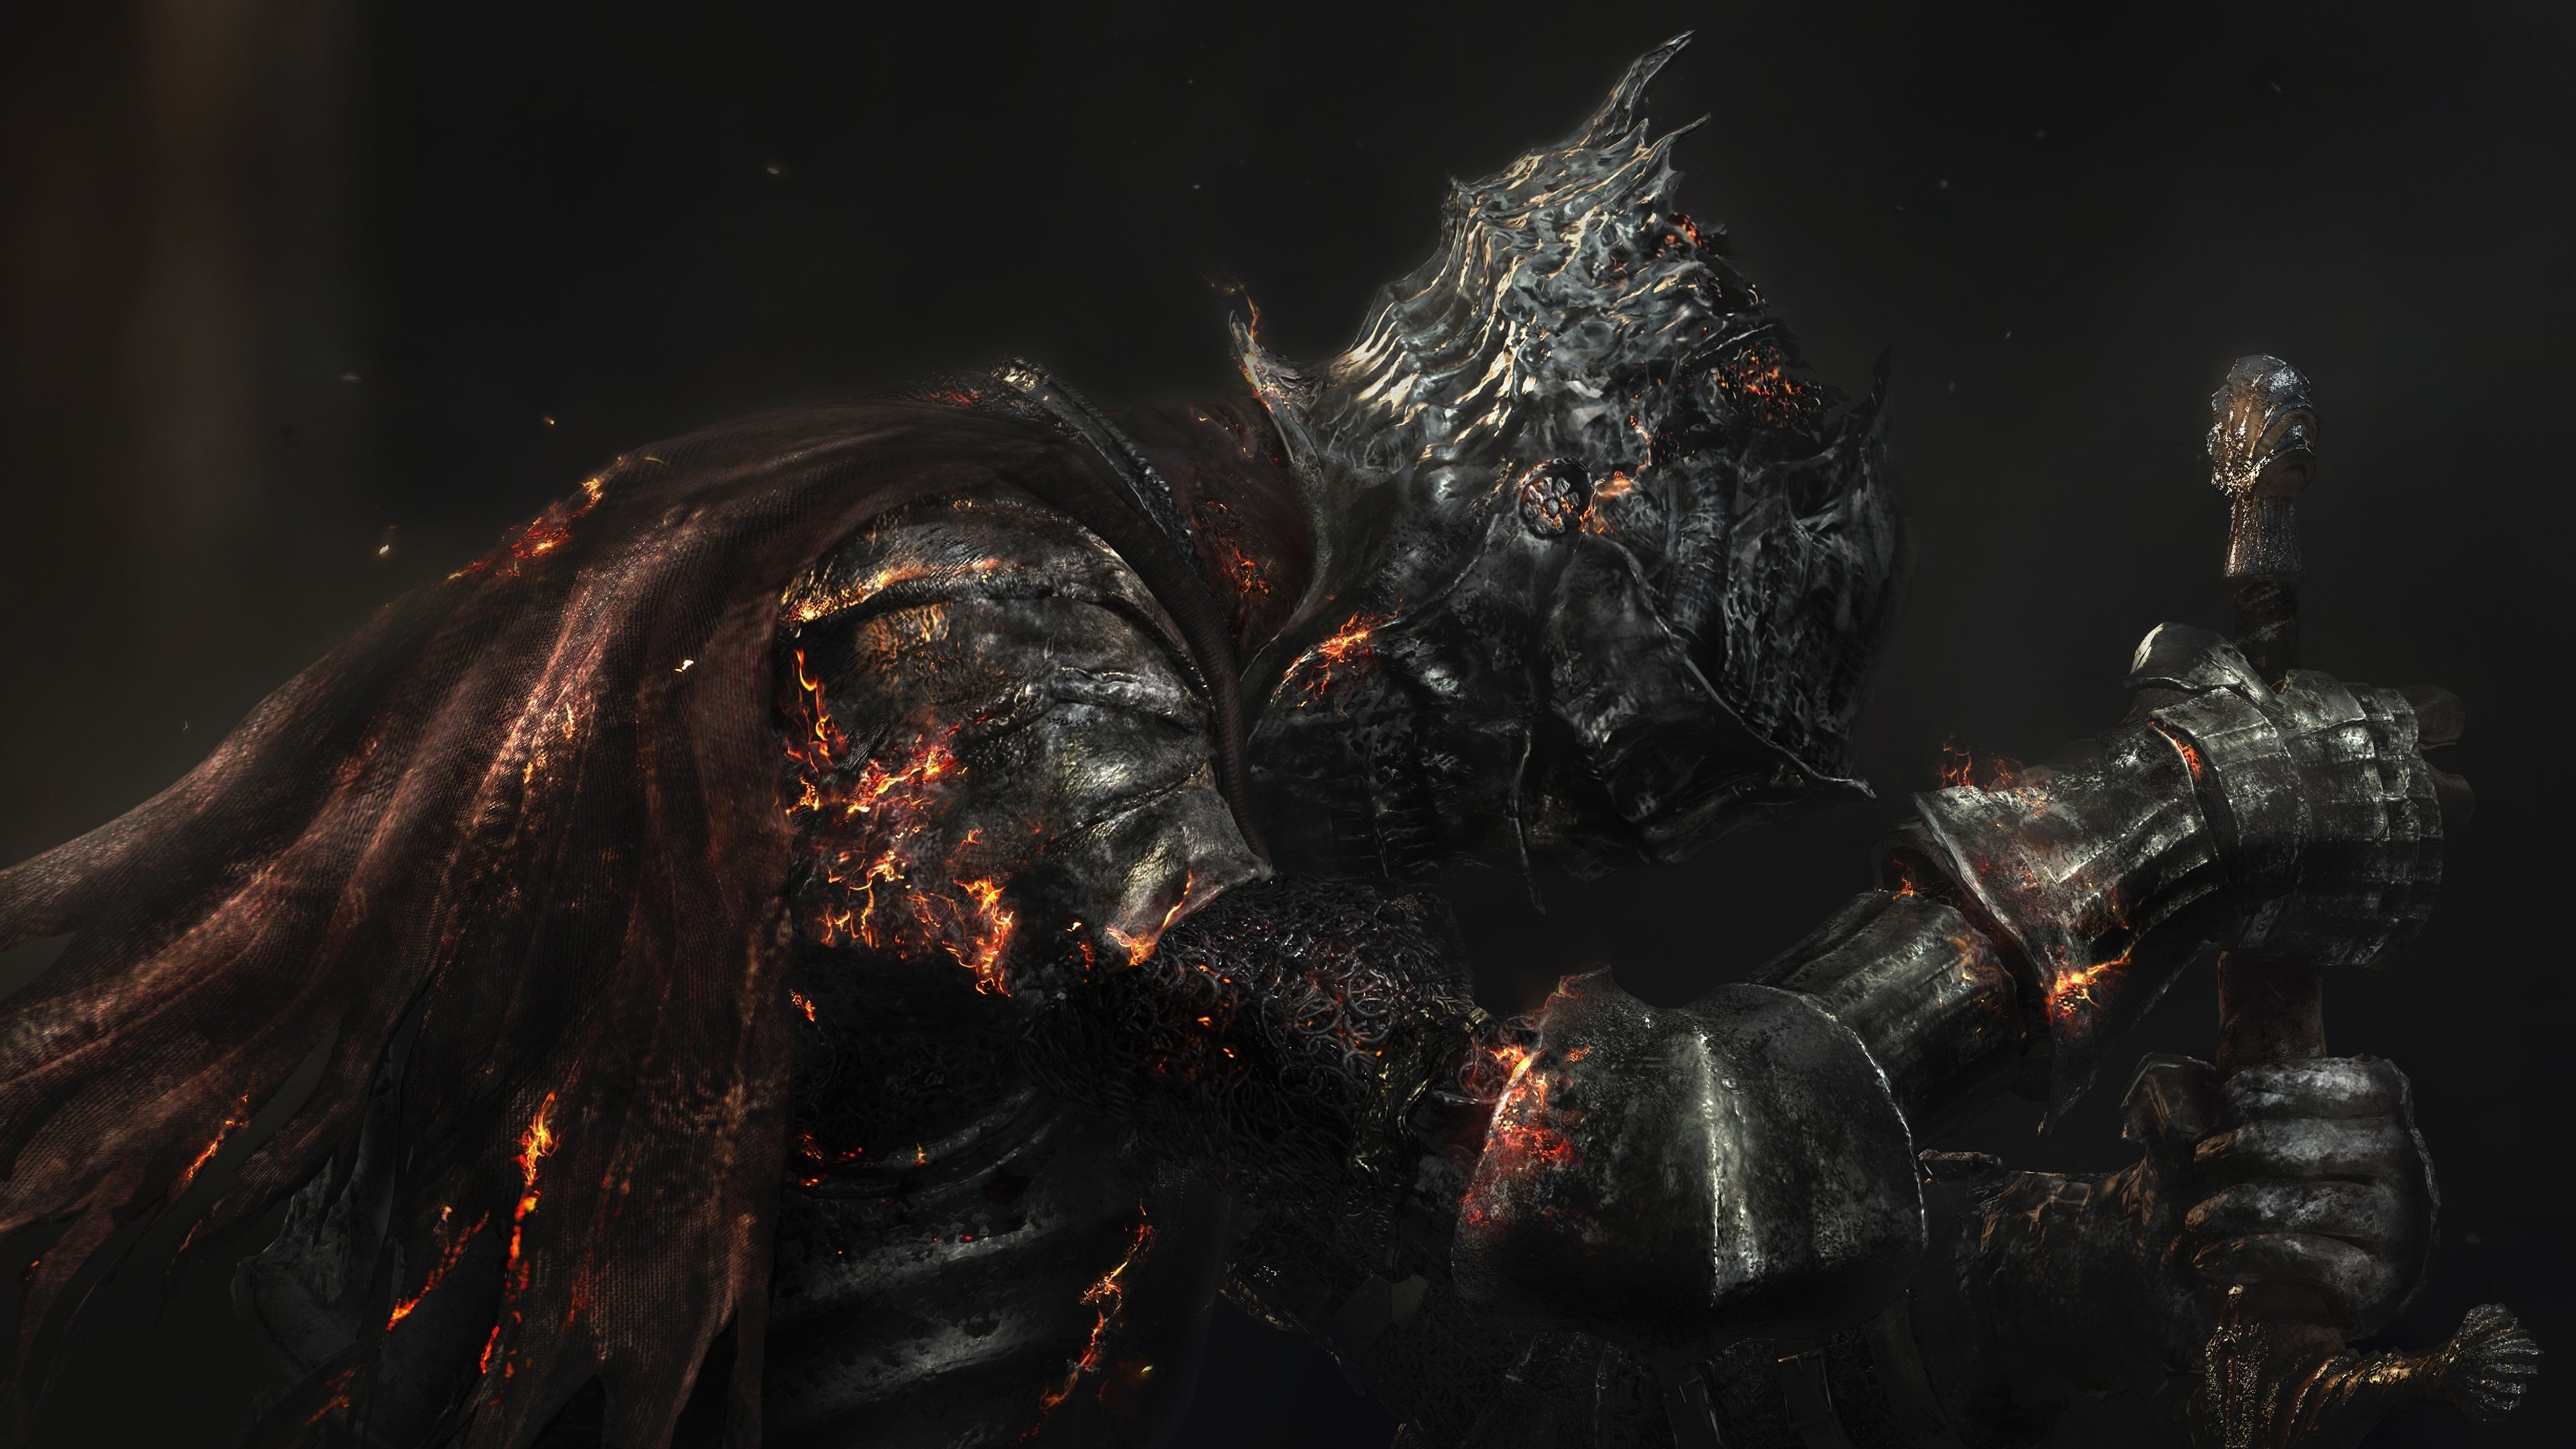 and this one 4k dark souls wallpaper for whoever wanted one